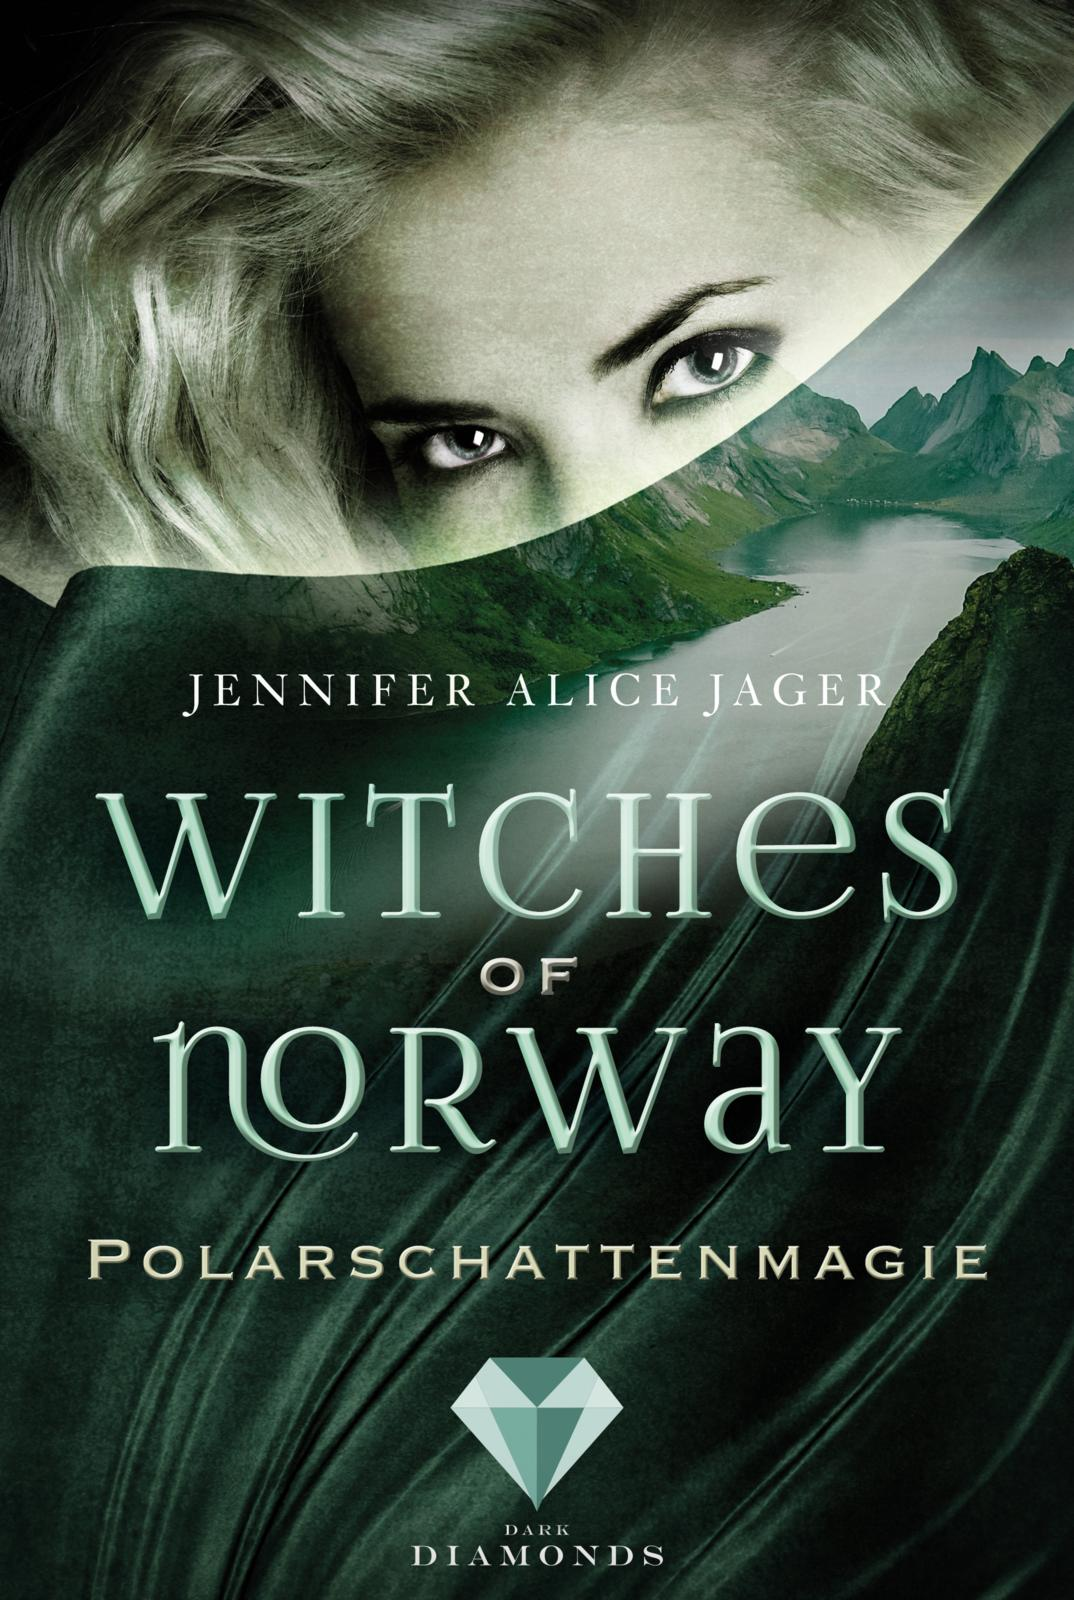 Witches of Norway - Polarschattenmagie